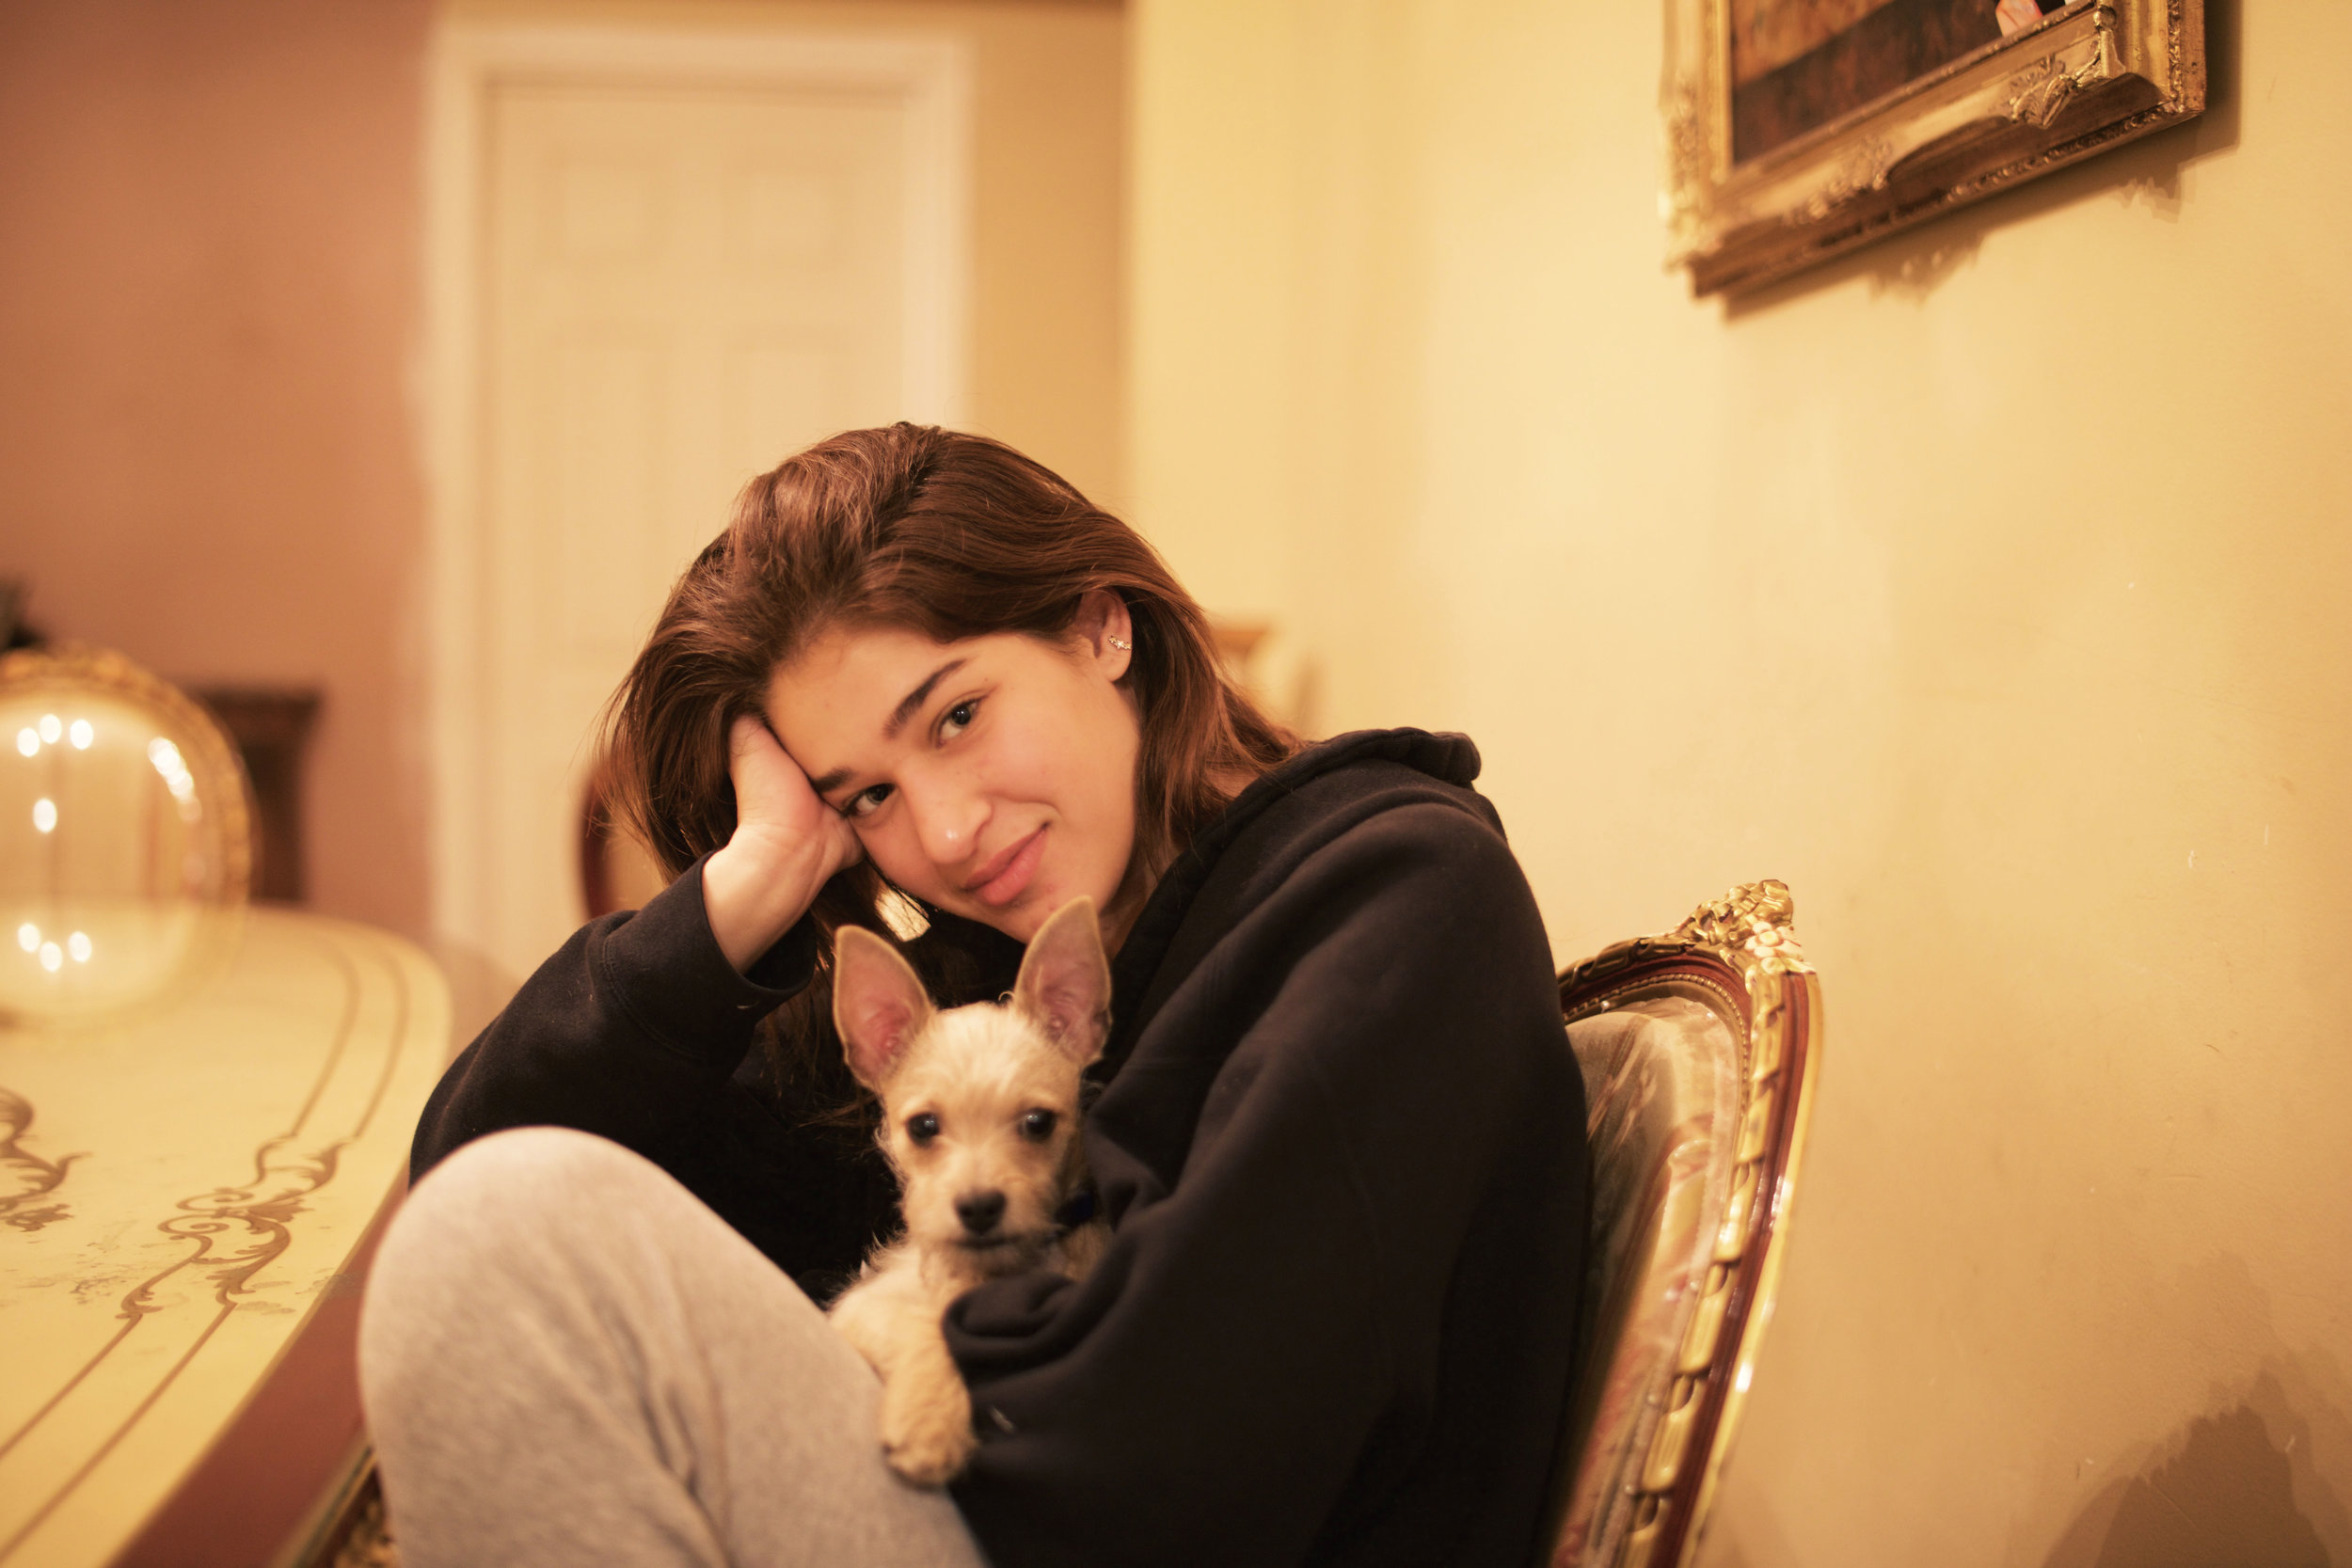 Debby and the Rasson's new puppy, Kudo